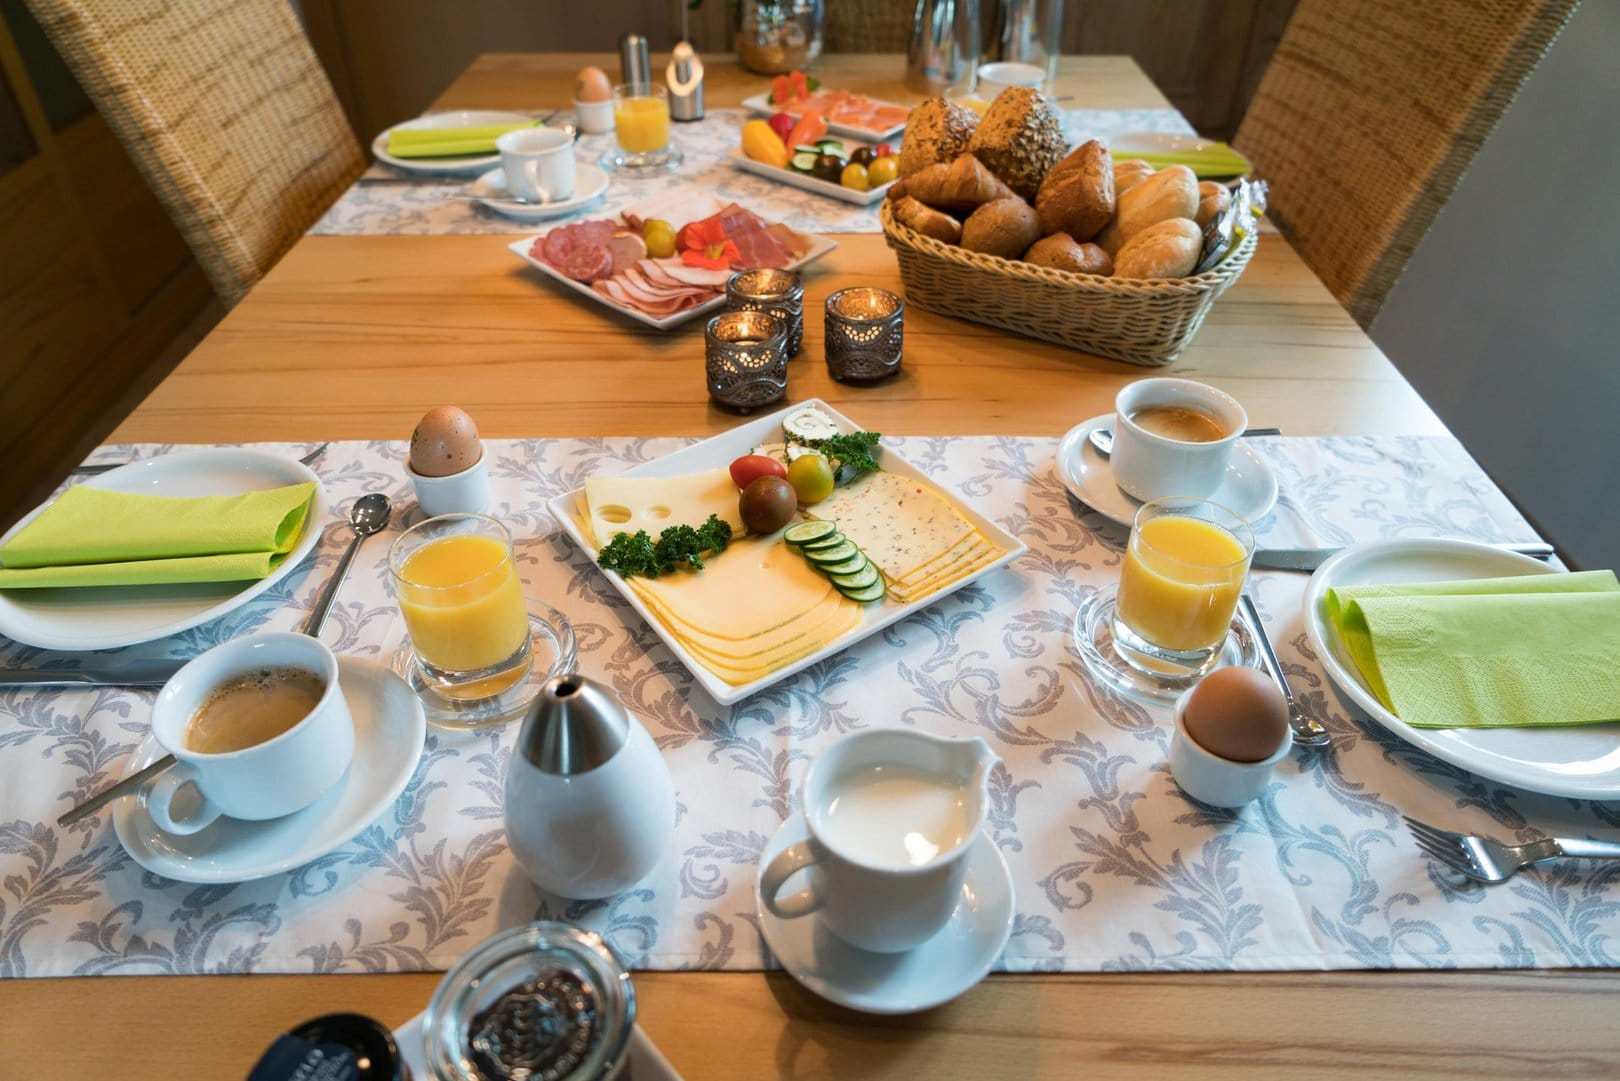 A breakfast table, generously set with coffee cups, eggs, orange juice, meats, cheeses and bread.